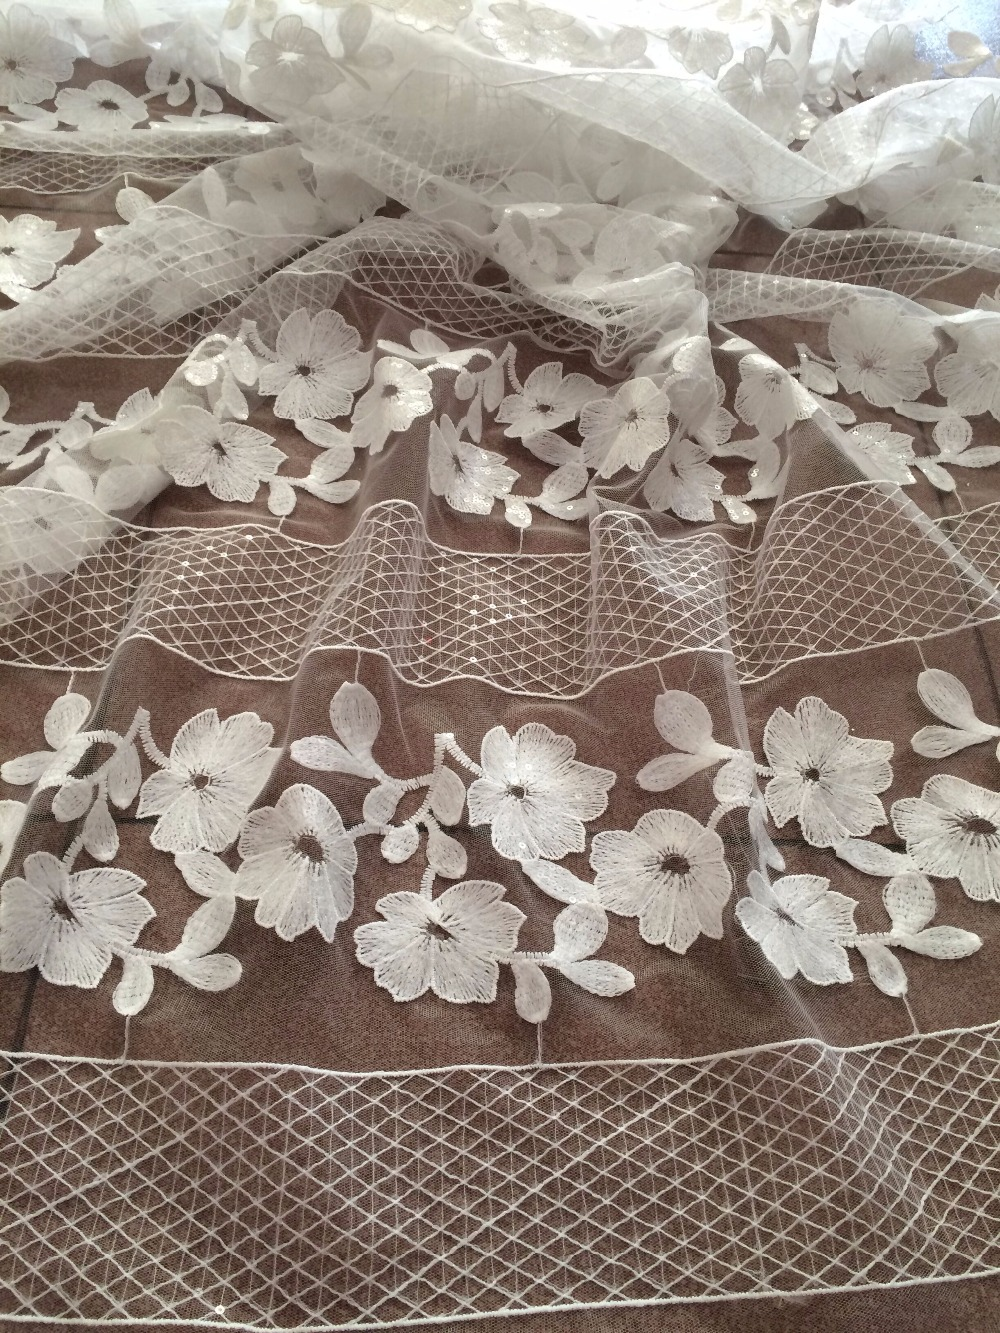 5 yards/lot french net lace fabric with sequins top quality tulle guipure lace fabric CiCi 91226 in white-in Fabric from Home & Garden    1